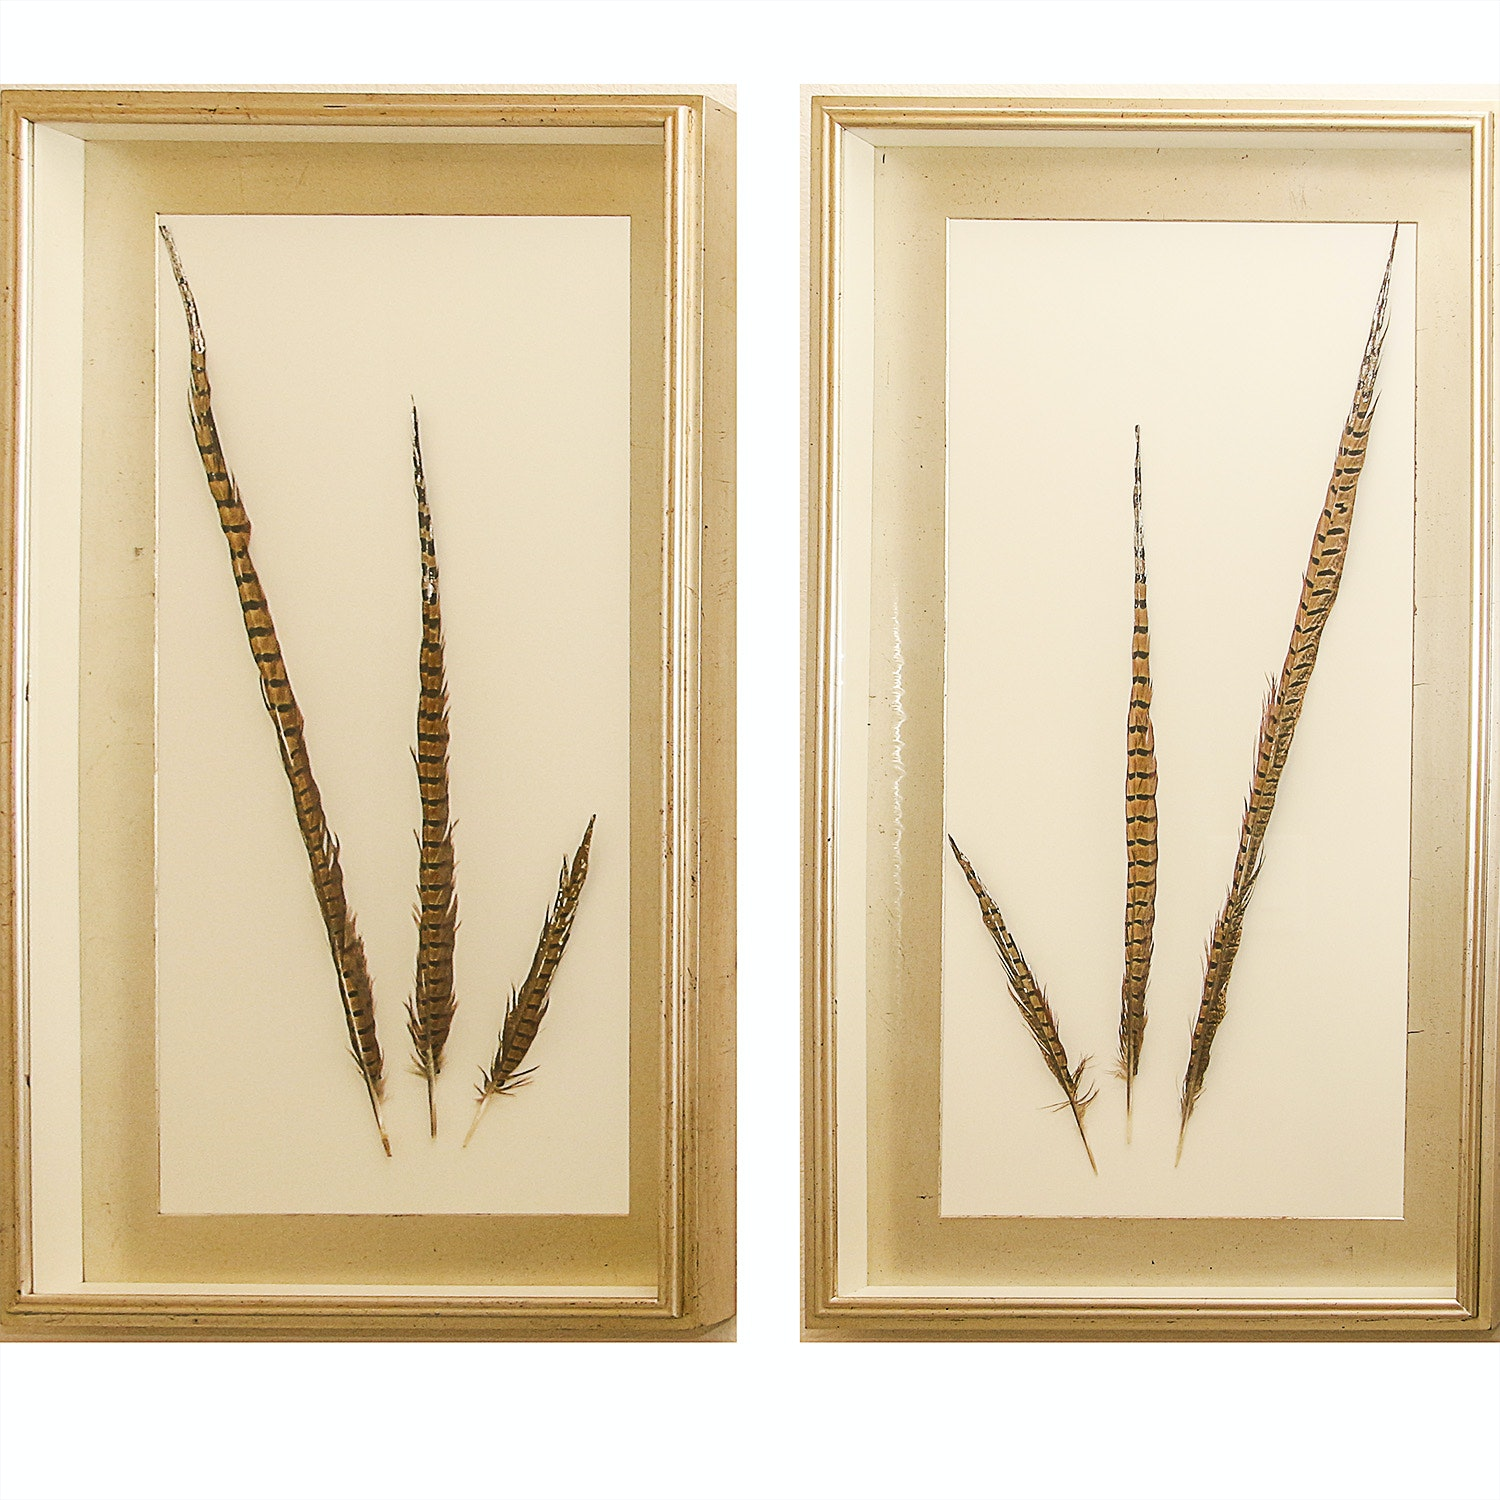 Framed Black and Brown Feathers